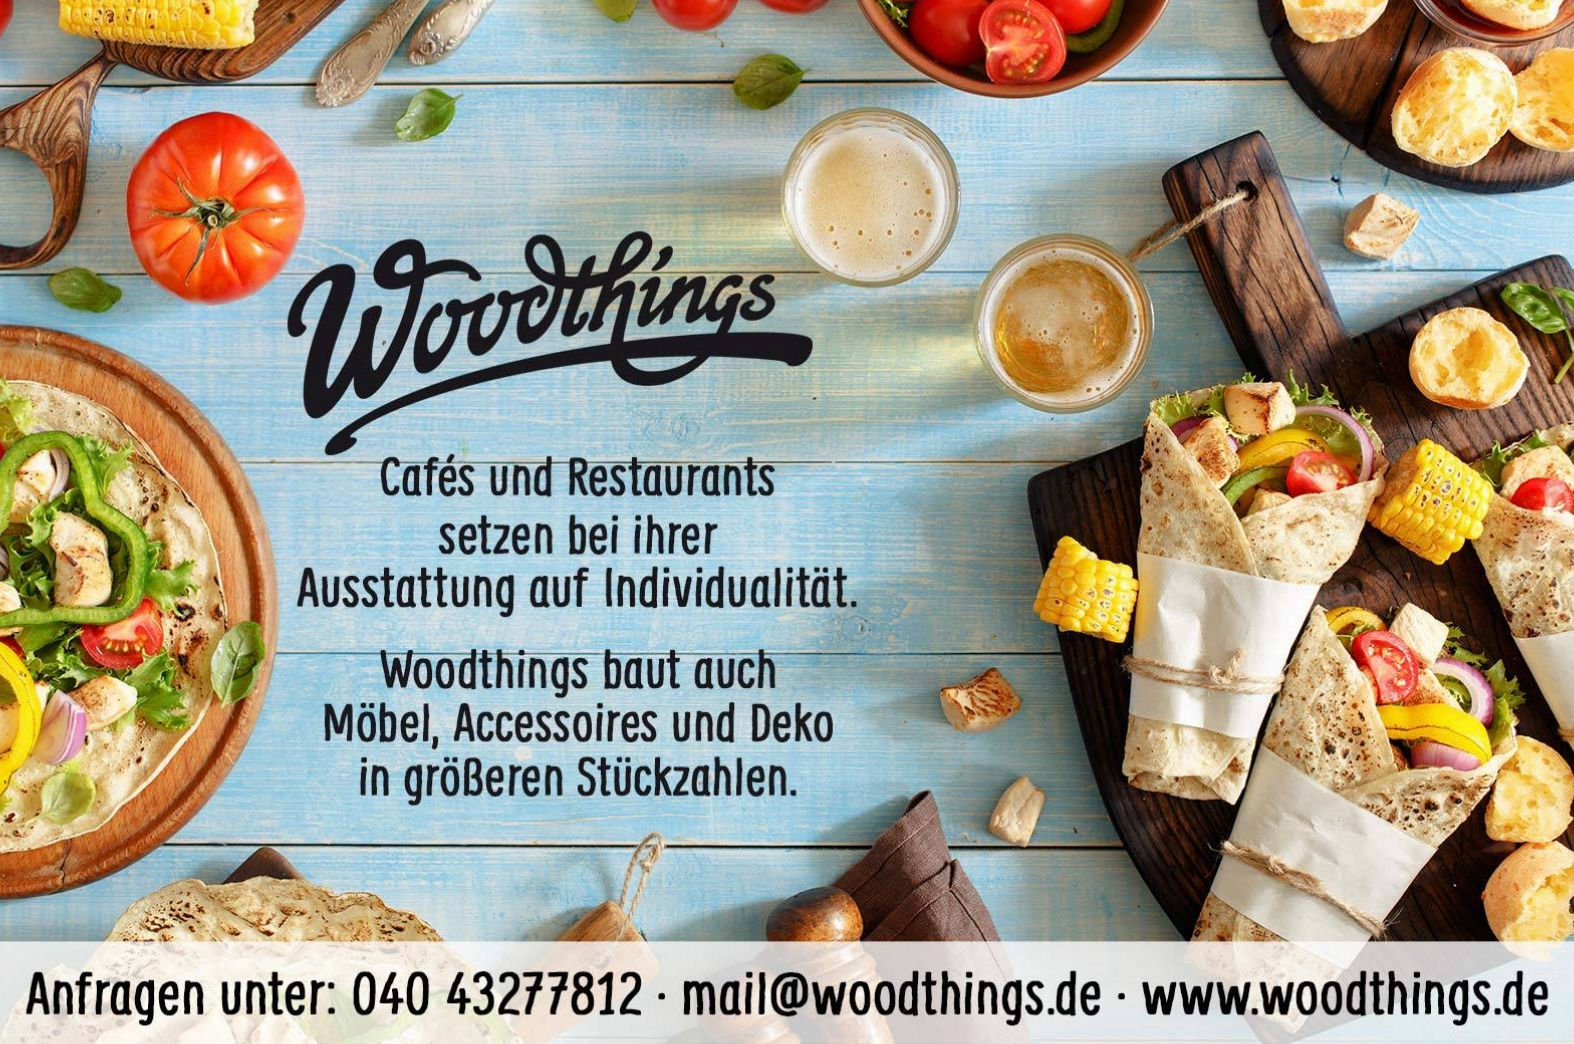 https://www.woodthings.de/